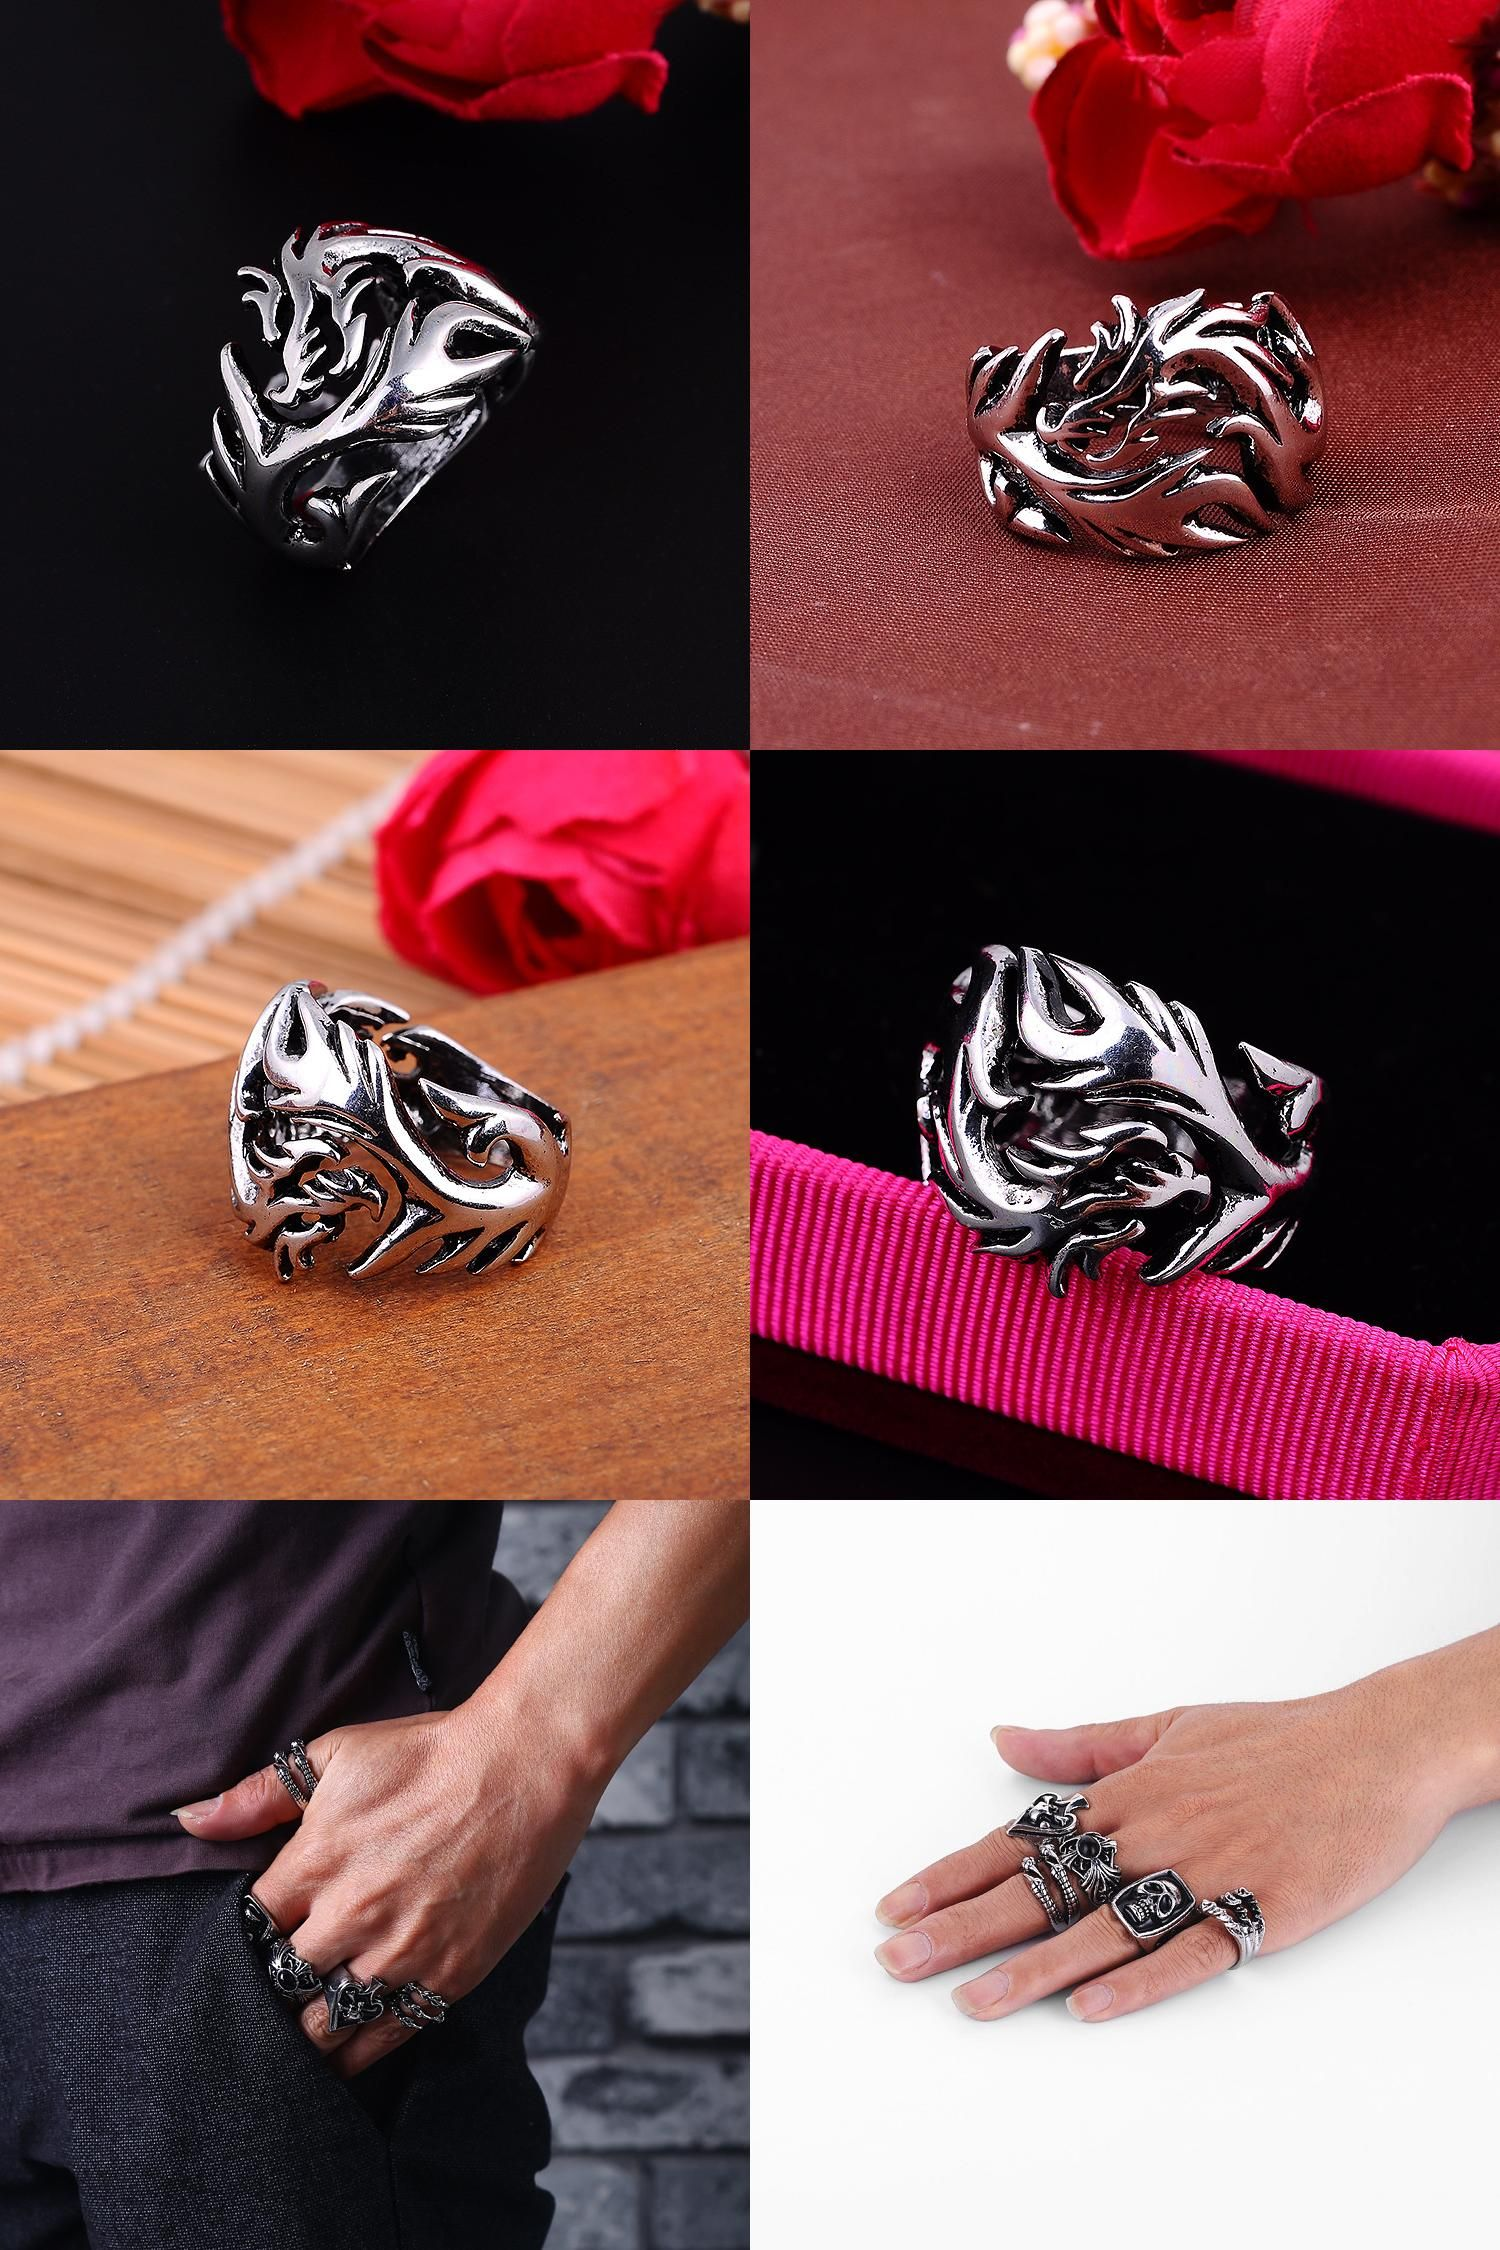 [Visit to Buy] Fashion Jewelry Chinese Dragon Titanium Rings Men's Stainless Steel Rings Personality Casual Vintage Punk Rings R003 #Advertisement